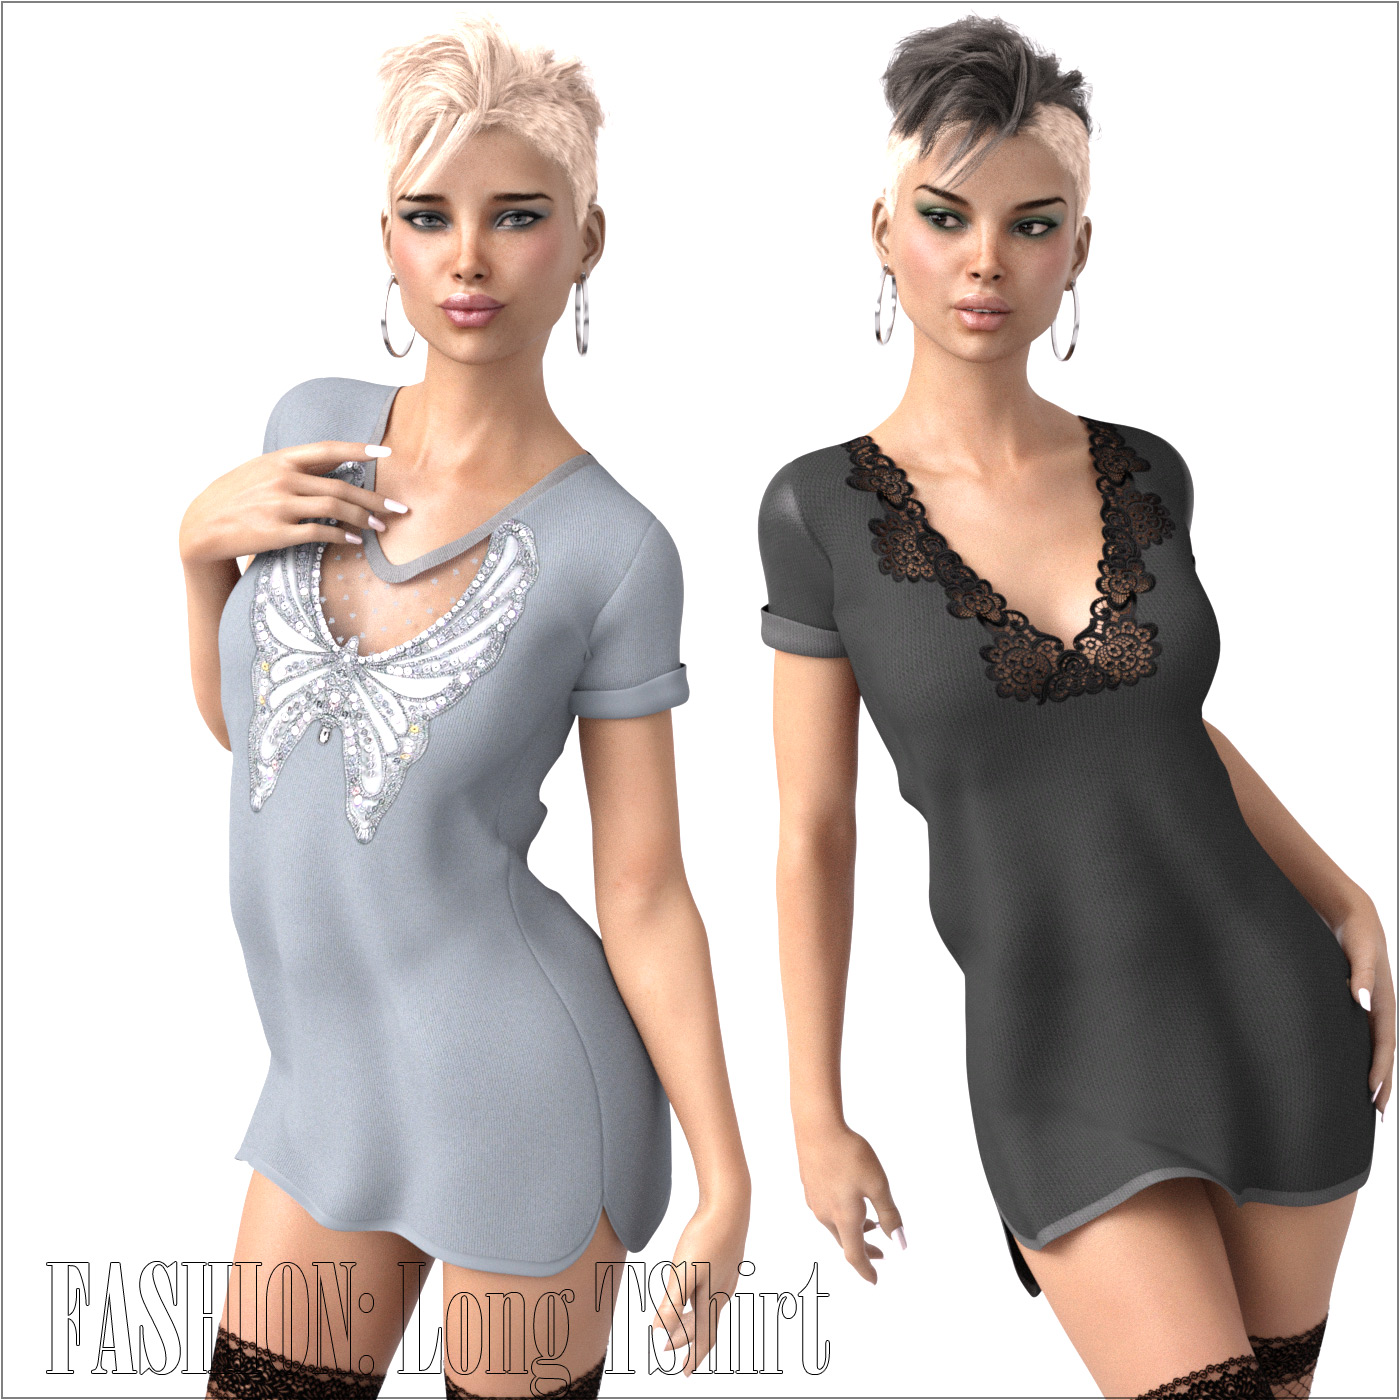 FASHION: Long TShirt IRAY